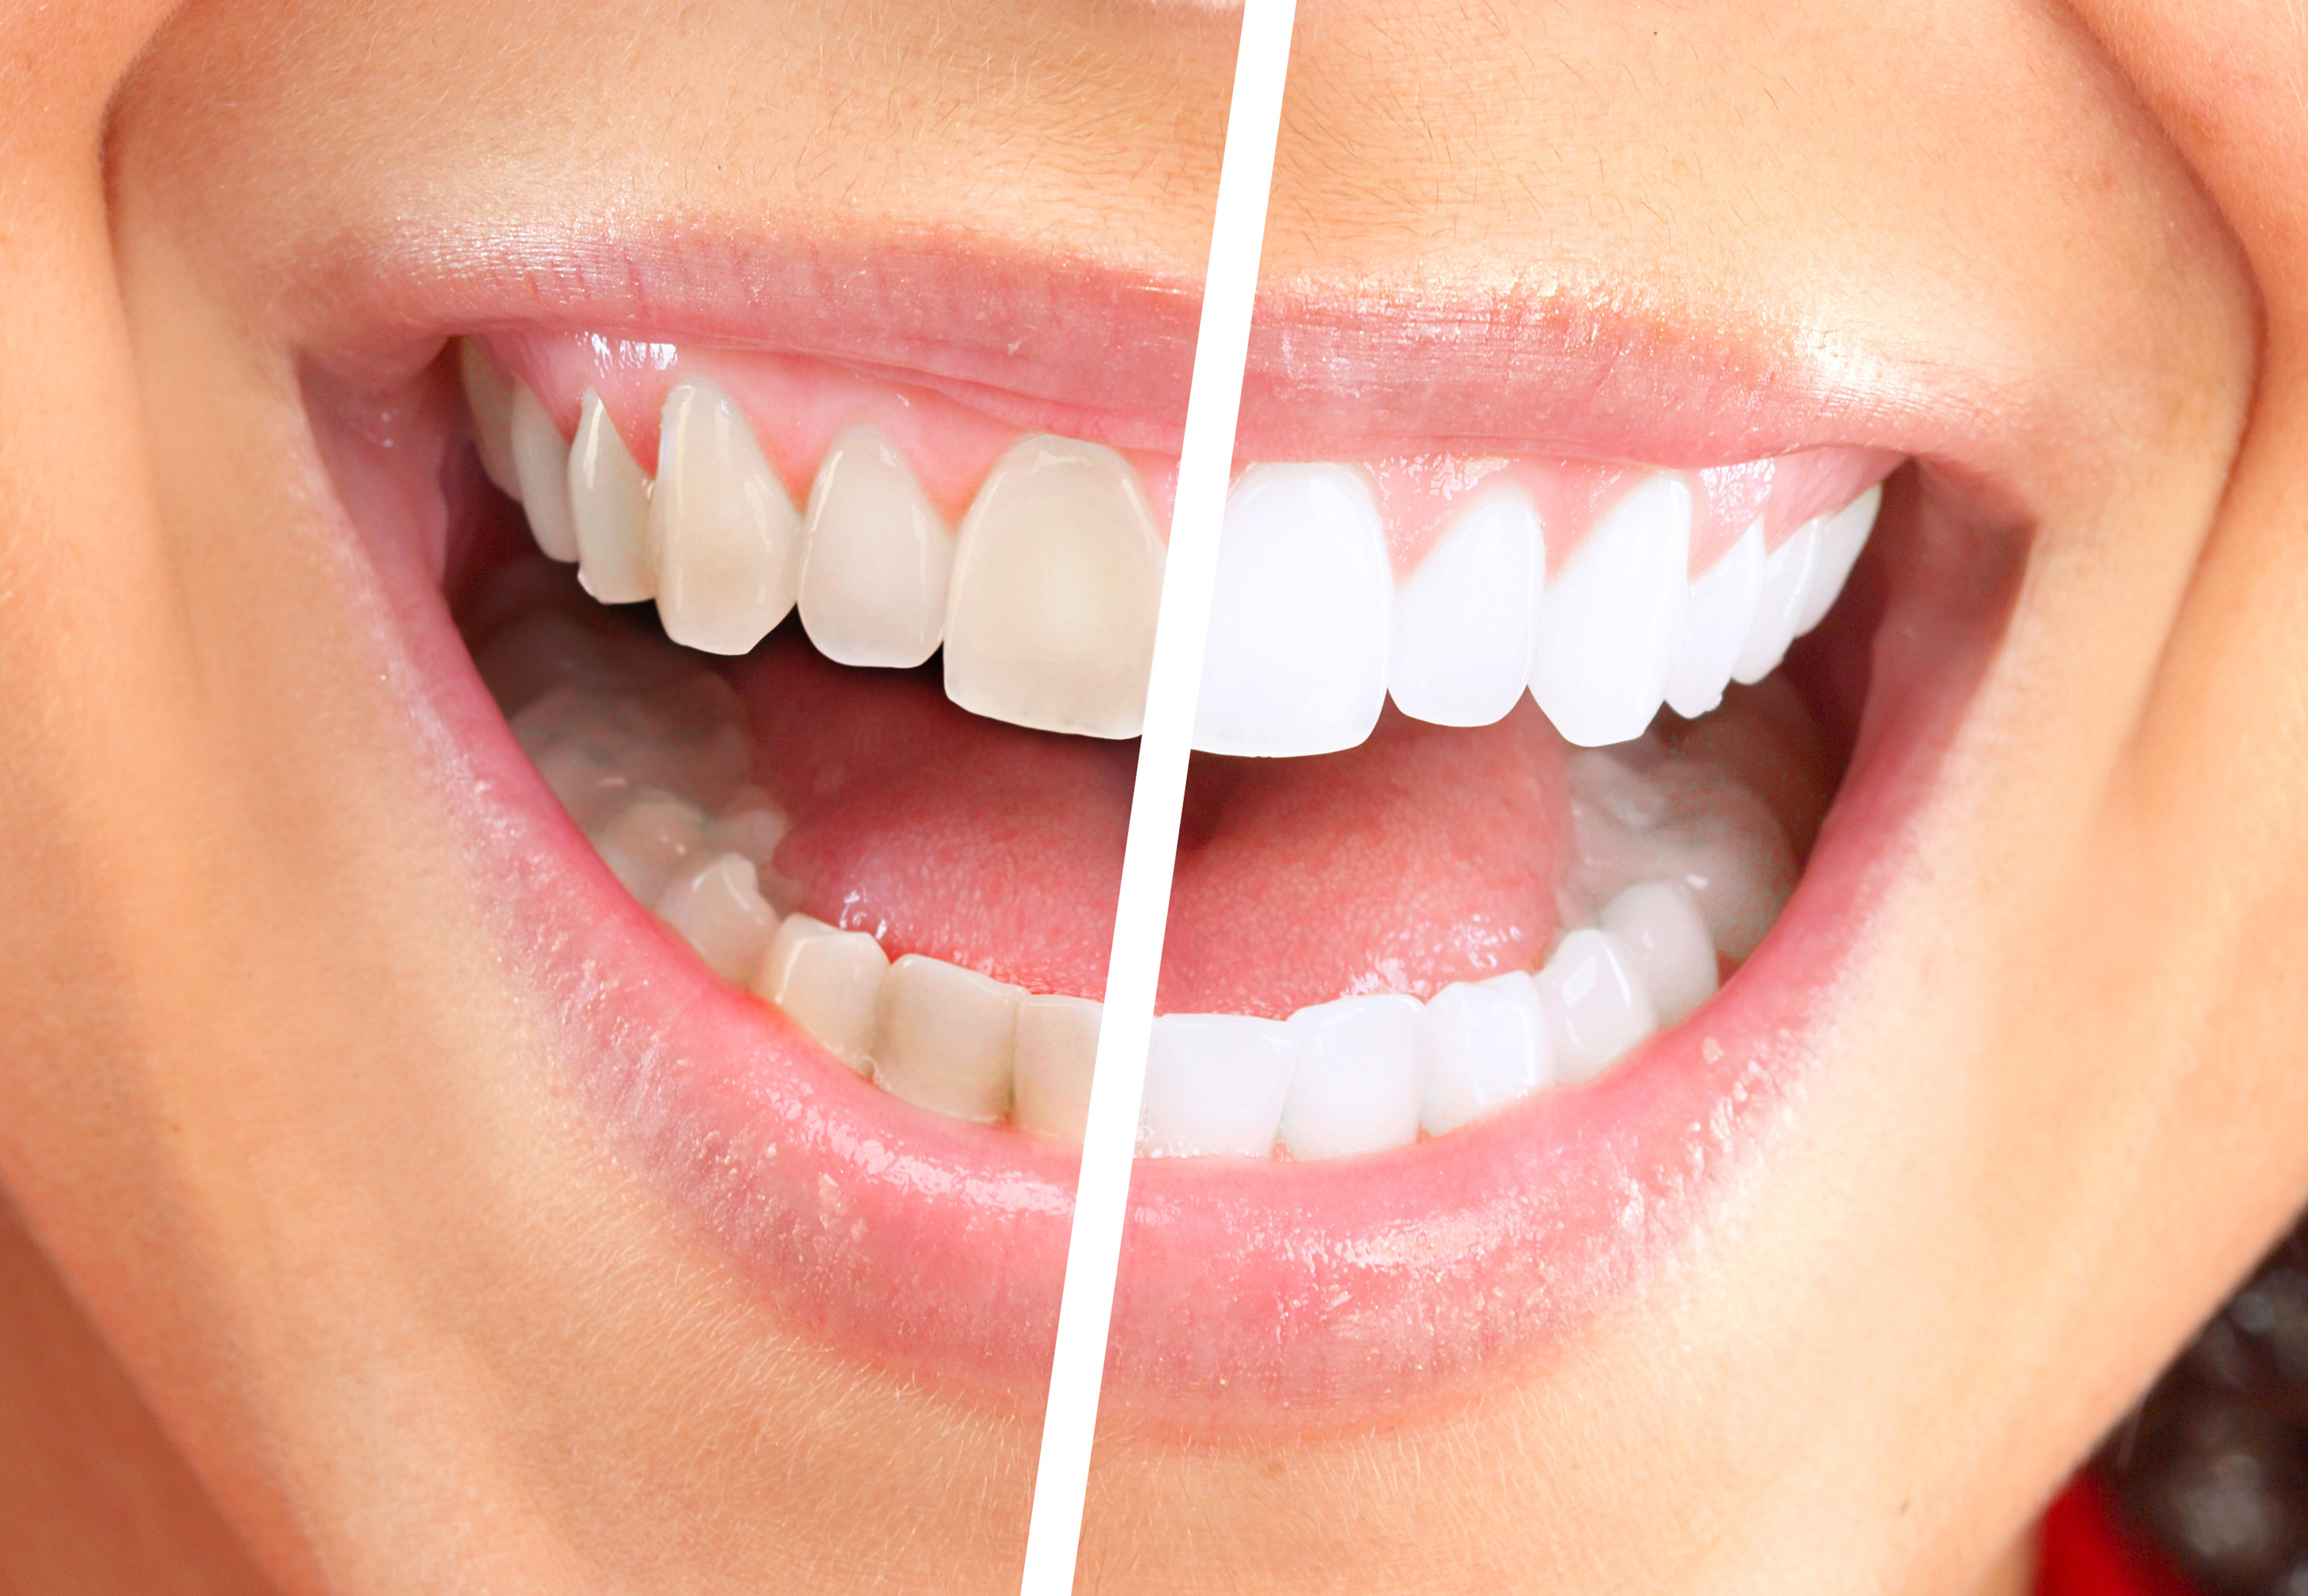 Century City Teeth Whitening - Remove Stains